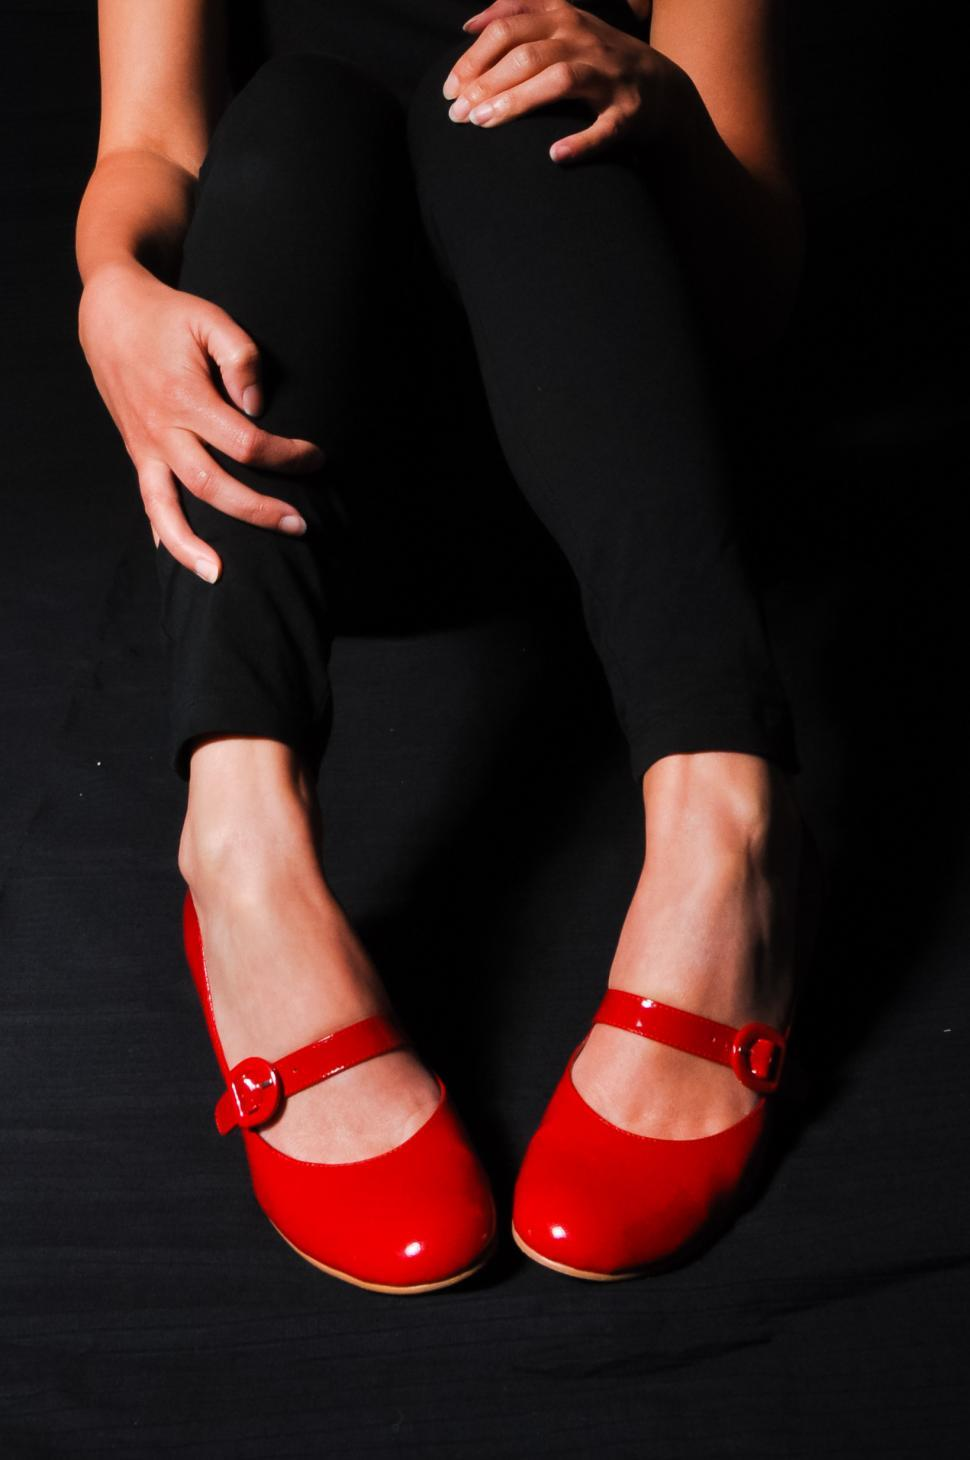 Download Free Stock HD Photo of woman legs in red high heel shoes  Online